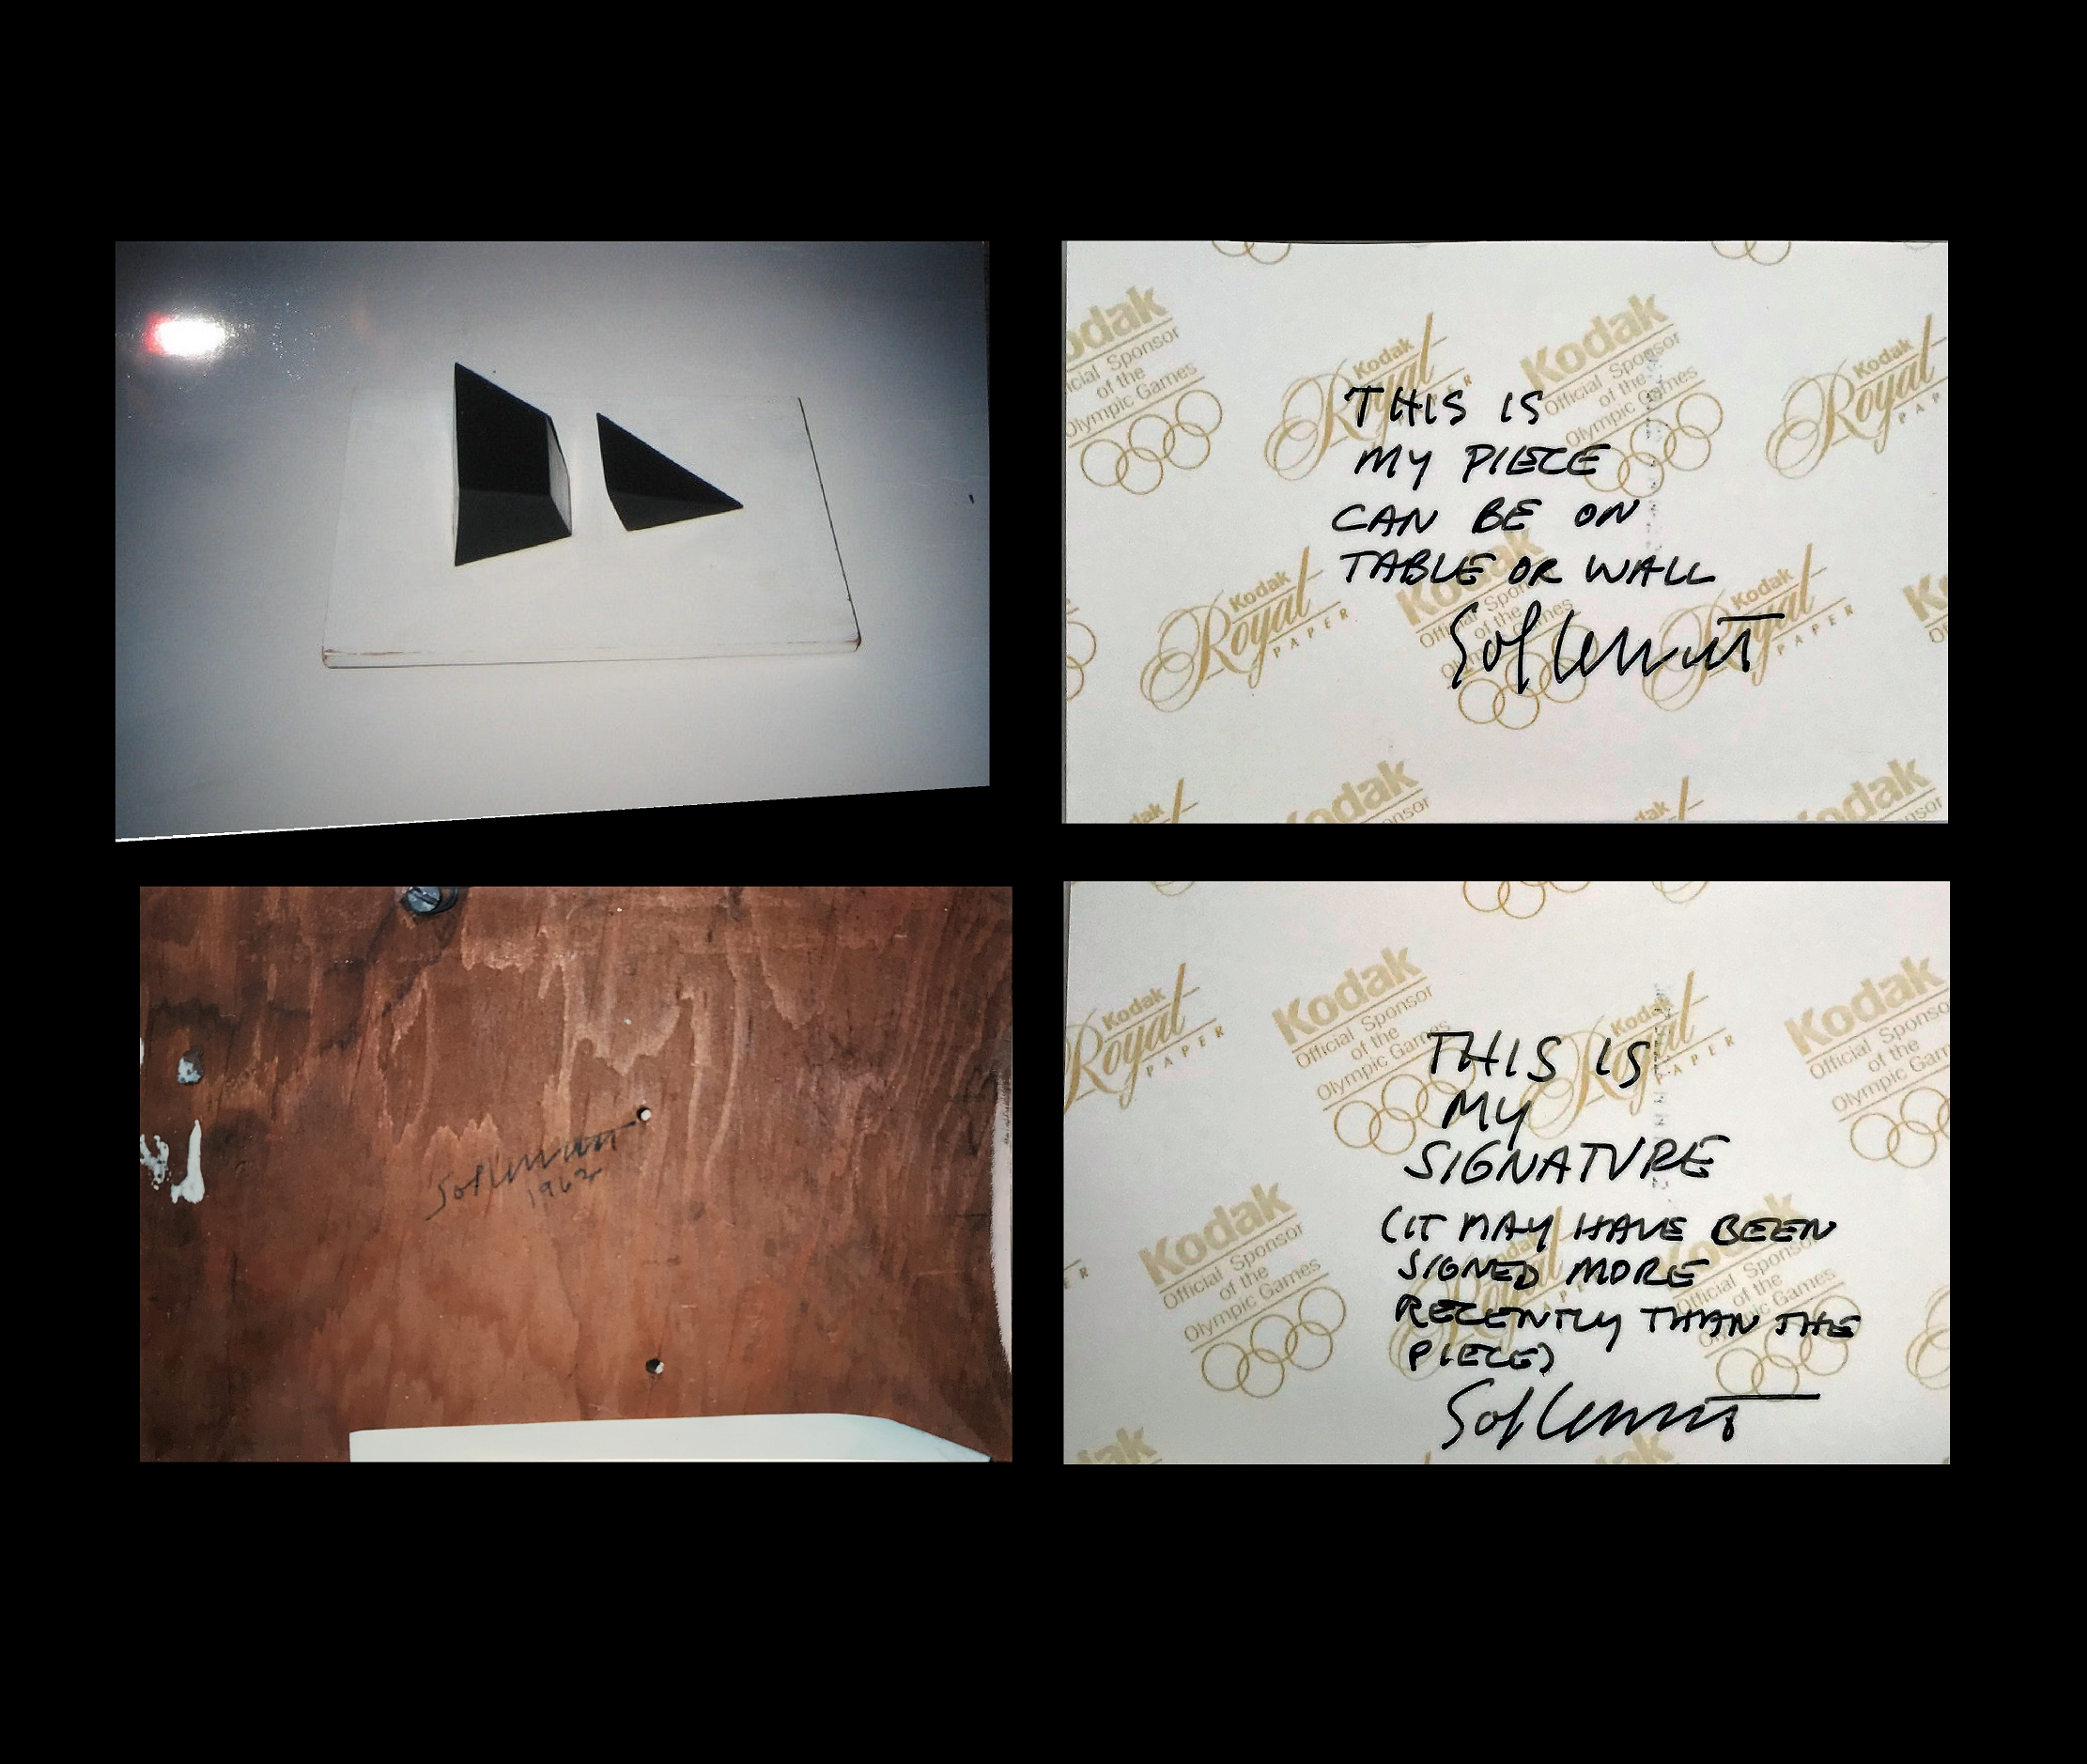 Two (2) Signed/ Annotated Photographs  of his 1962 Structure (the LeWitt Collection), 1962-1997, 4 × 6 in (10.2 × 15.2 cm) each.